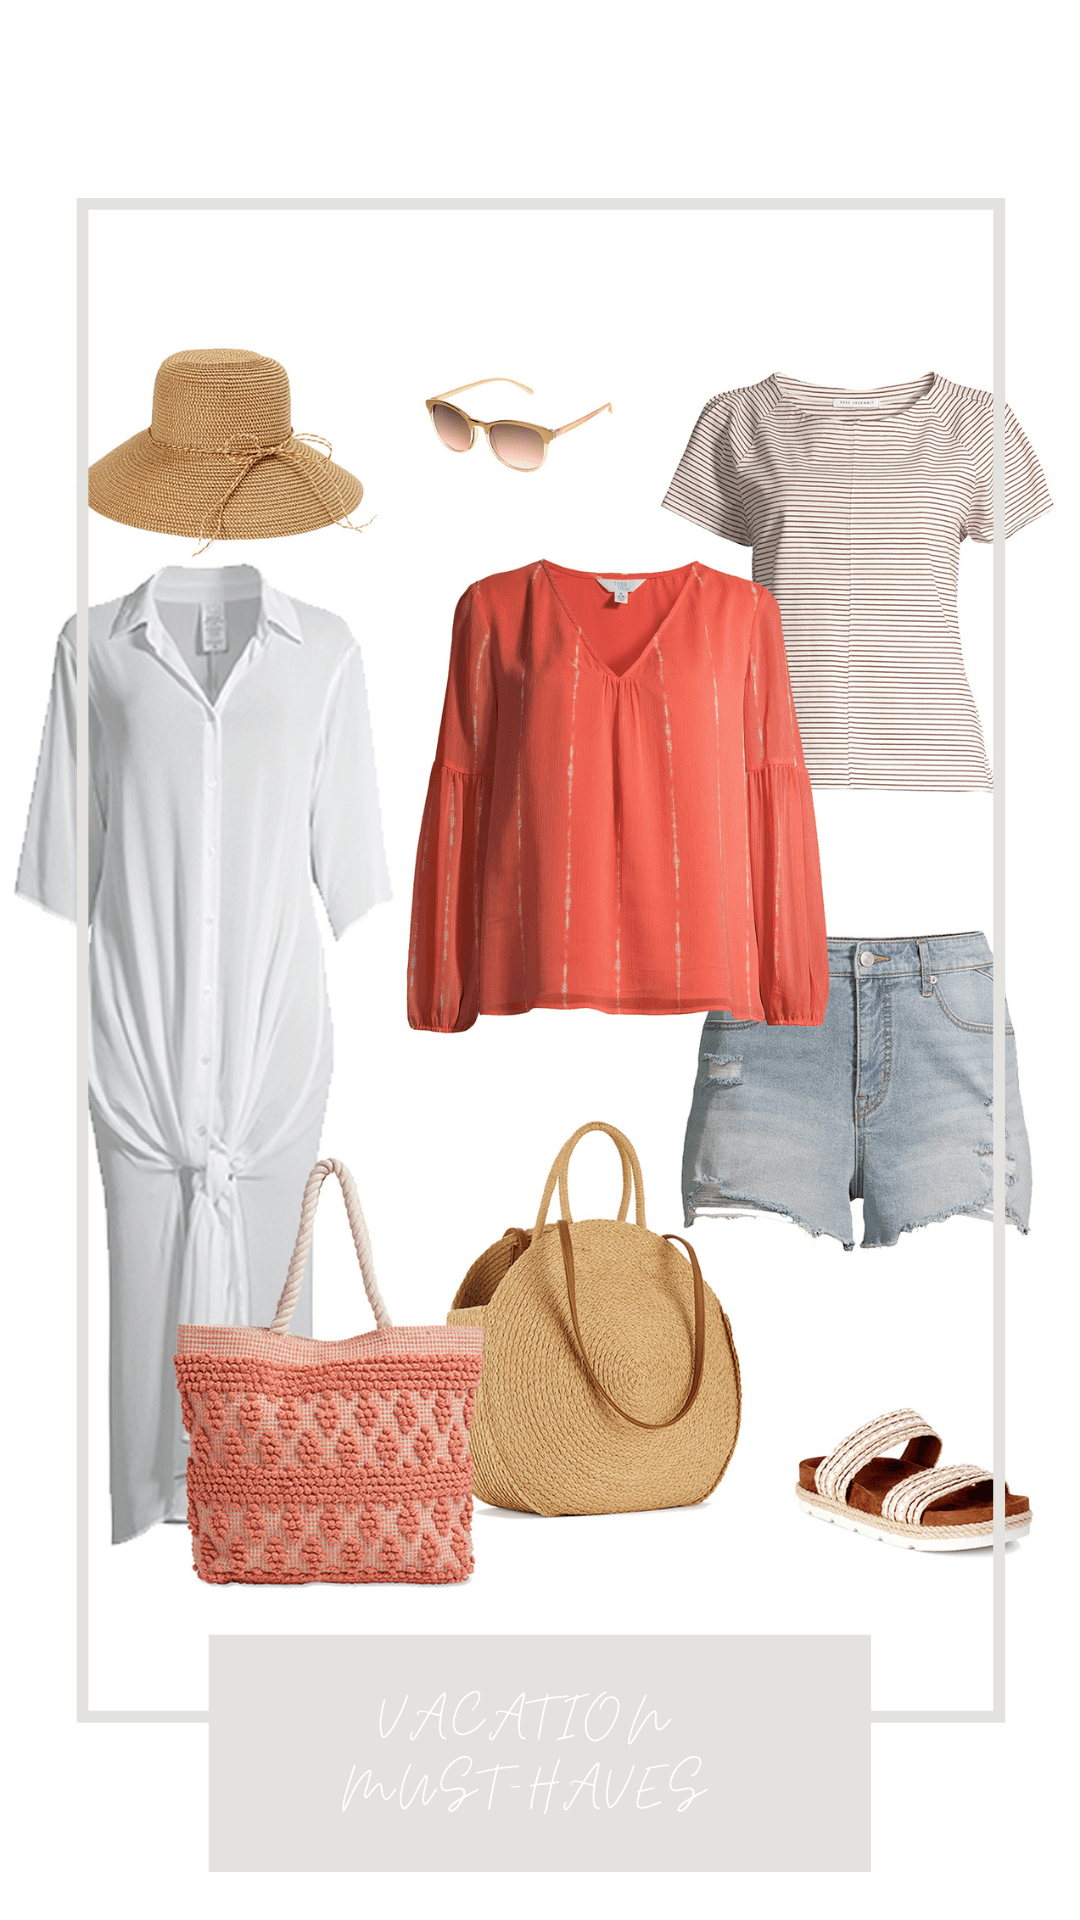 Affordable Vacation Must-Haves from Walmart